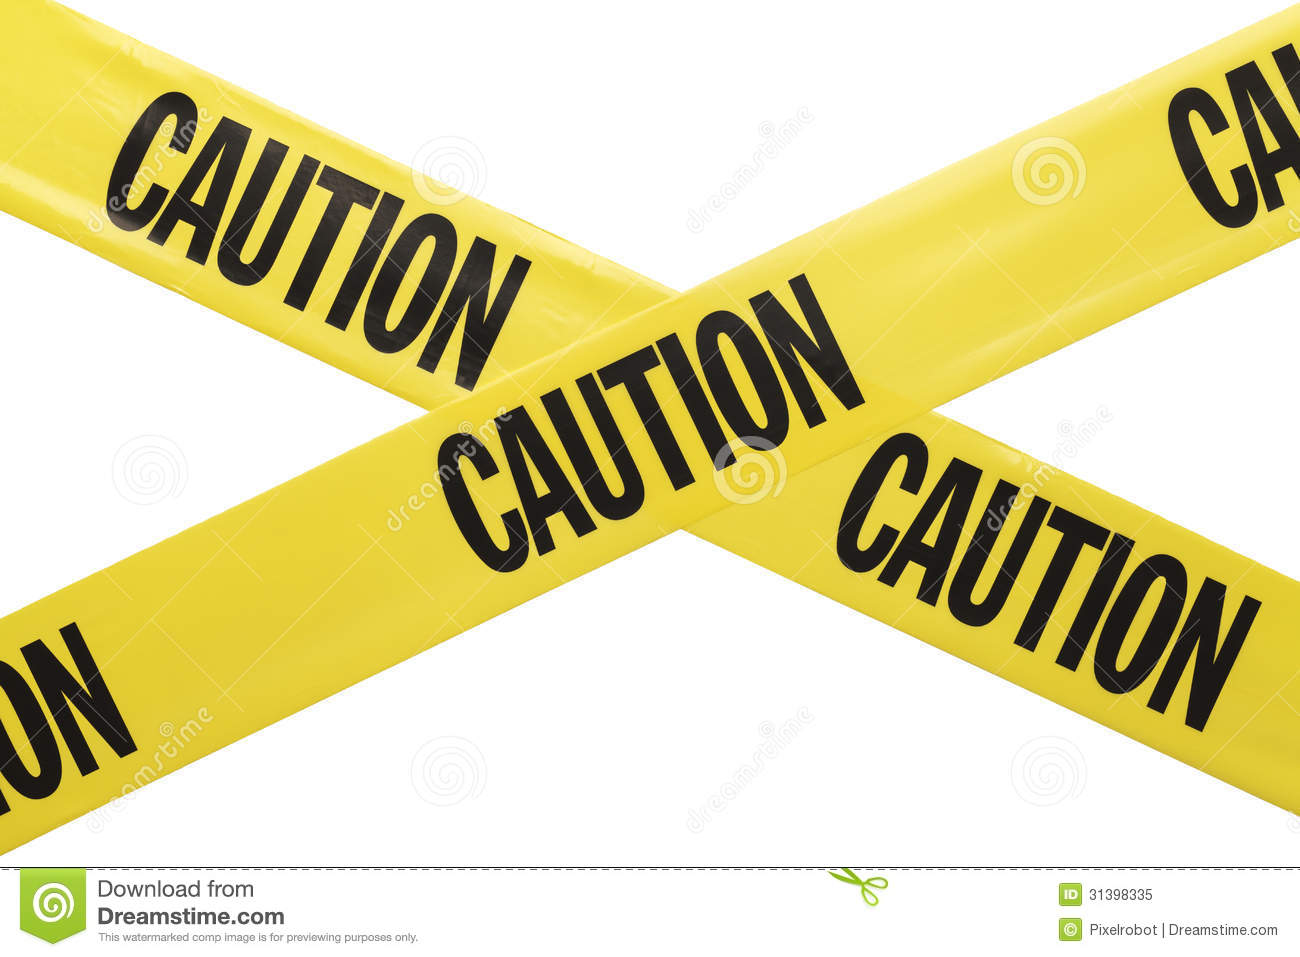 Yellow Plastic Caution Tape Criss Crossing Isolated on White ...